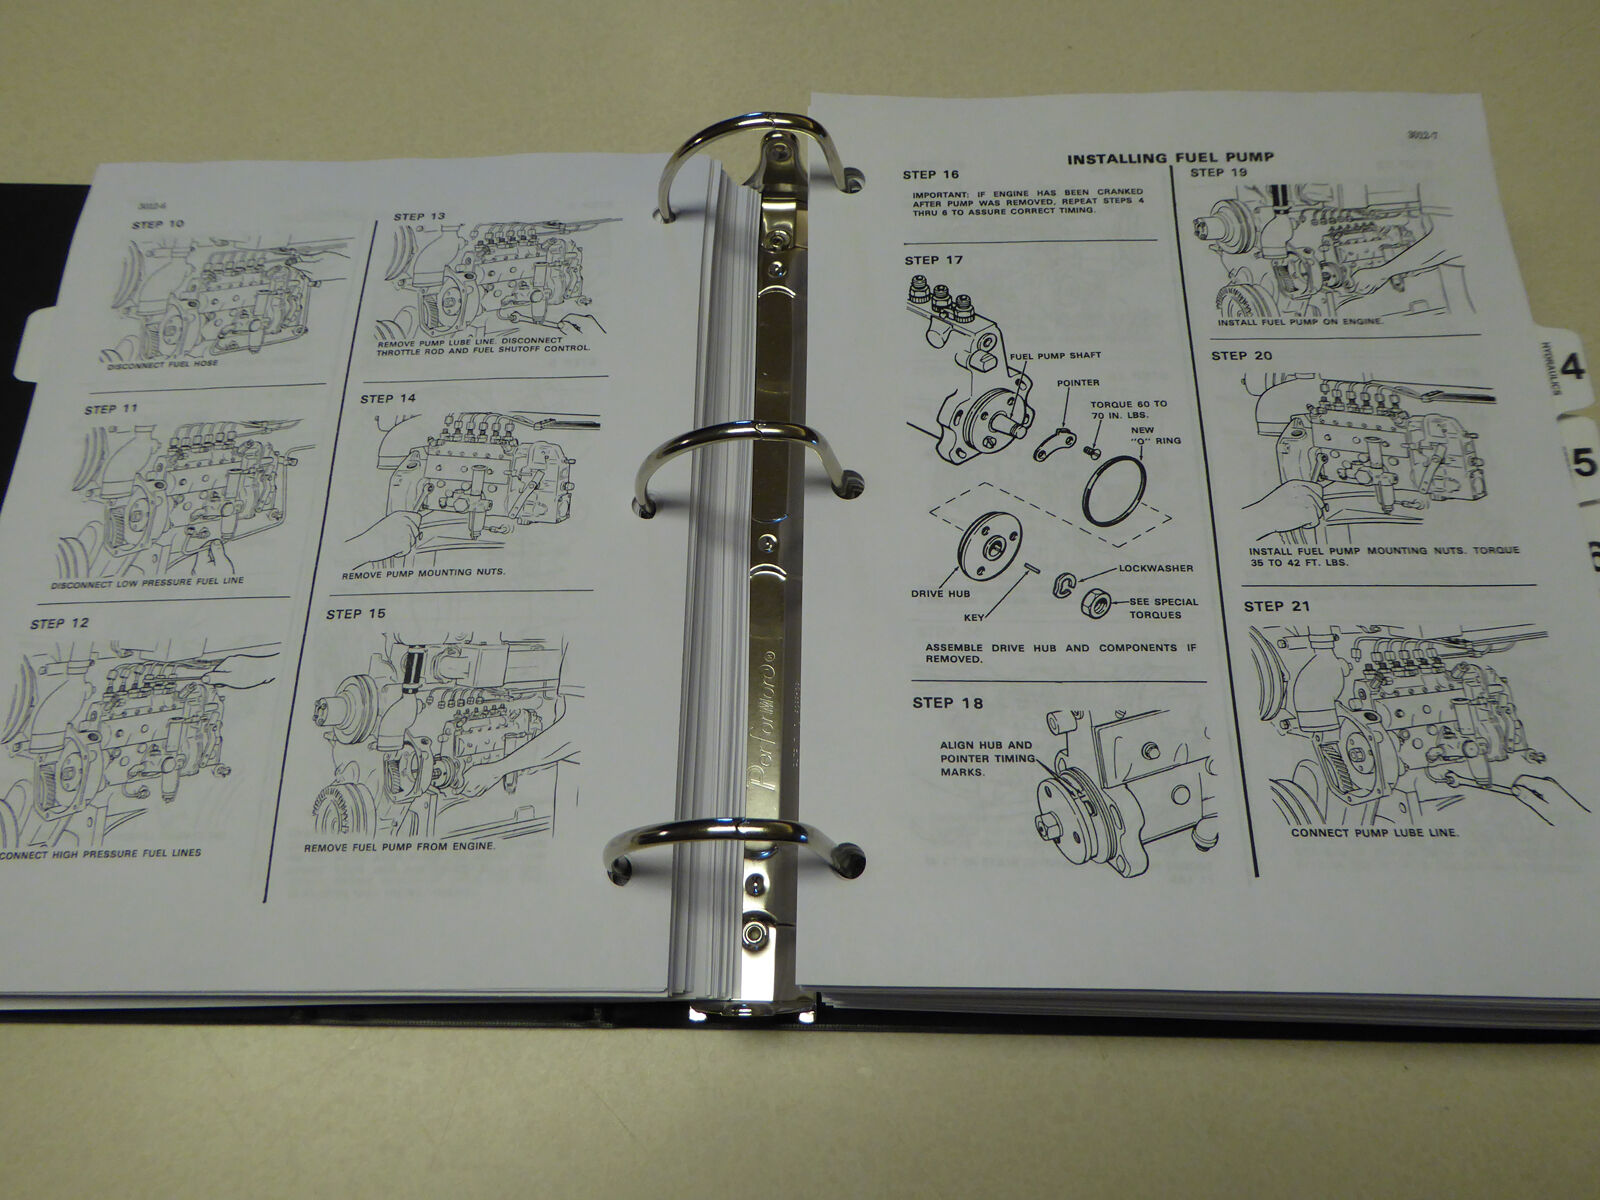 5 of 12 Case 970/1070 Tractor Service Manual Repair Shop Book NEW with  Binder 6 of 12 Case 970/1070 Tractor Service Manual ...